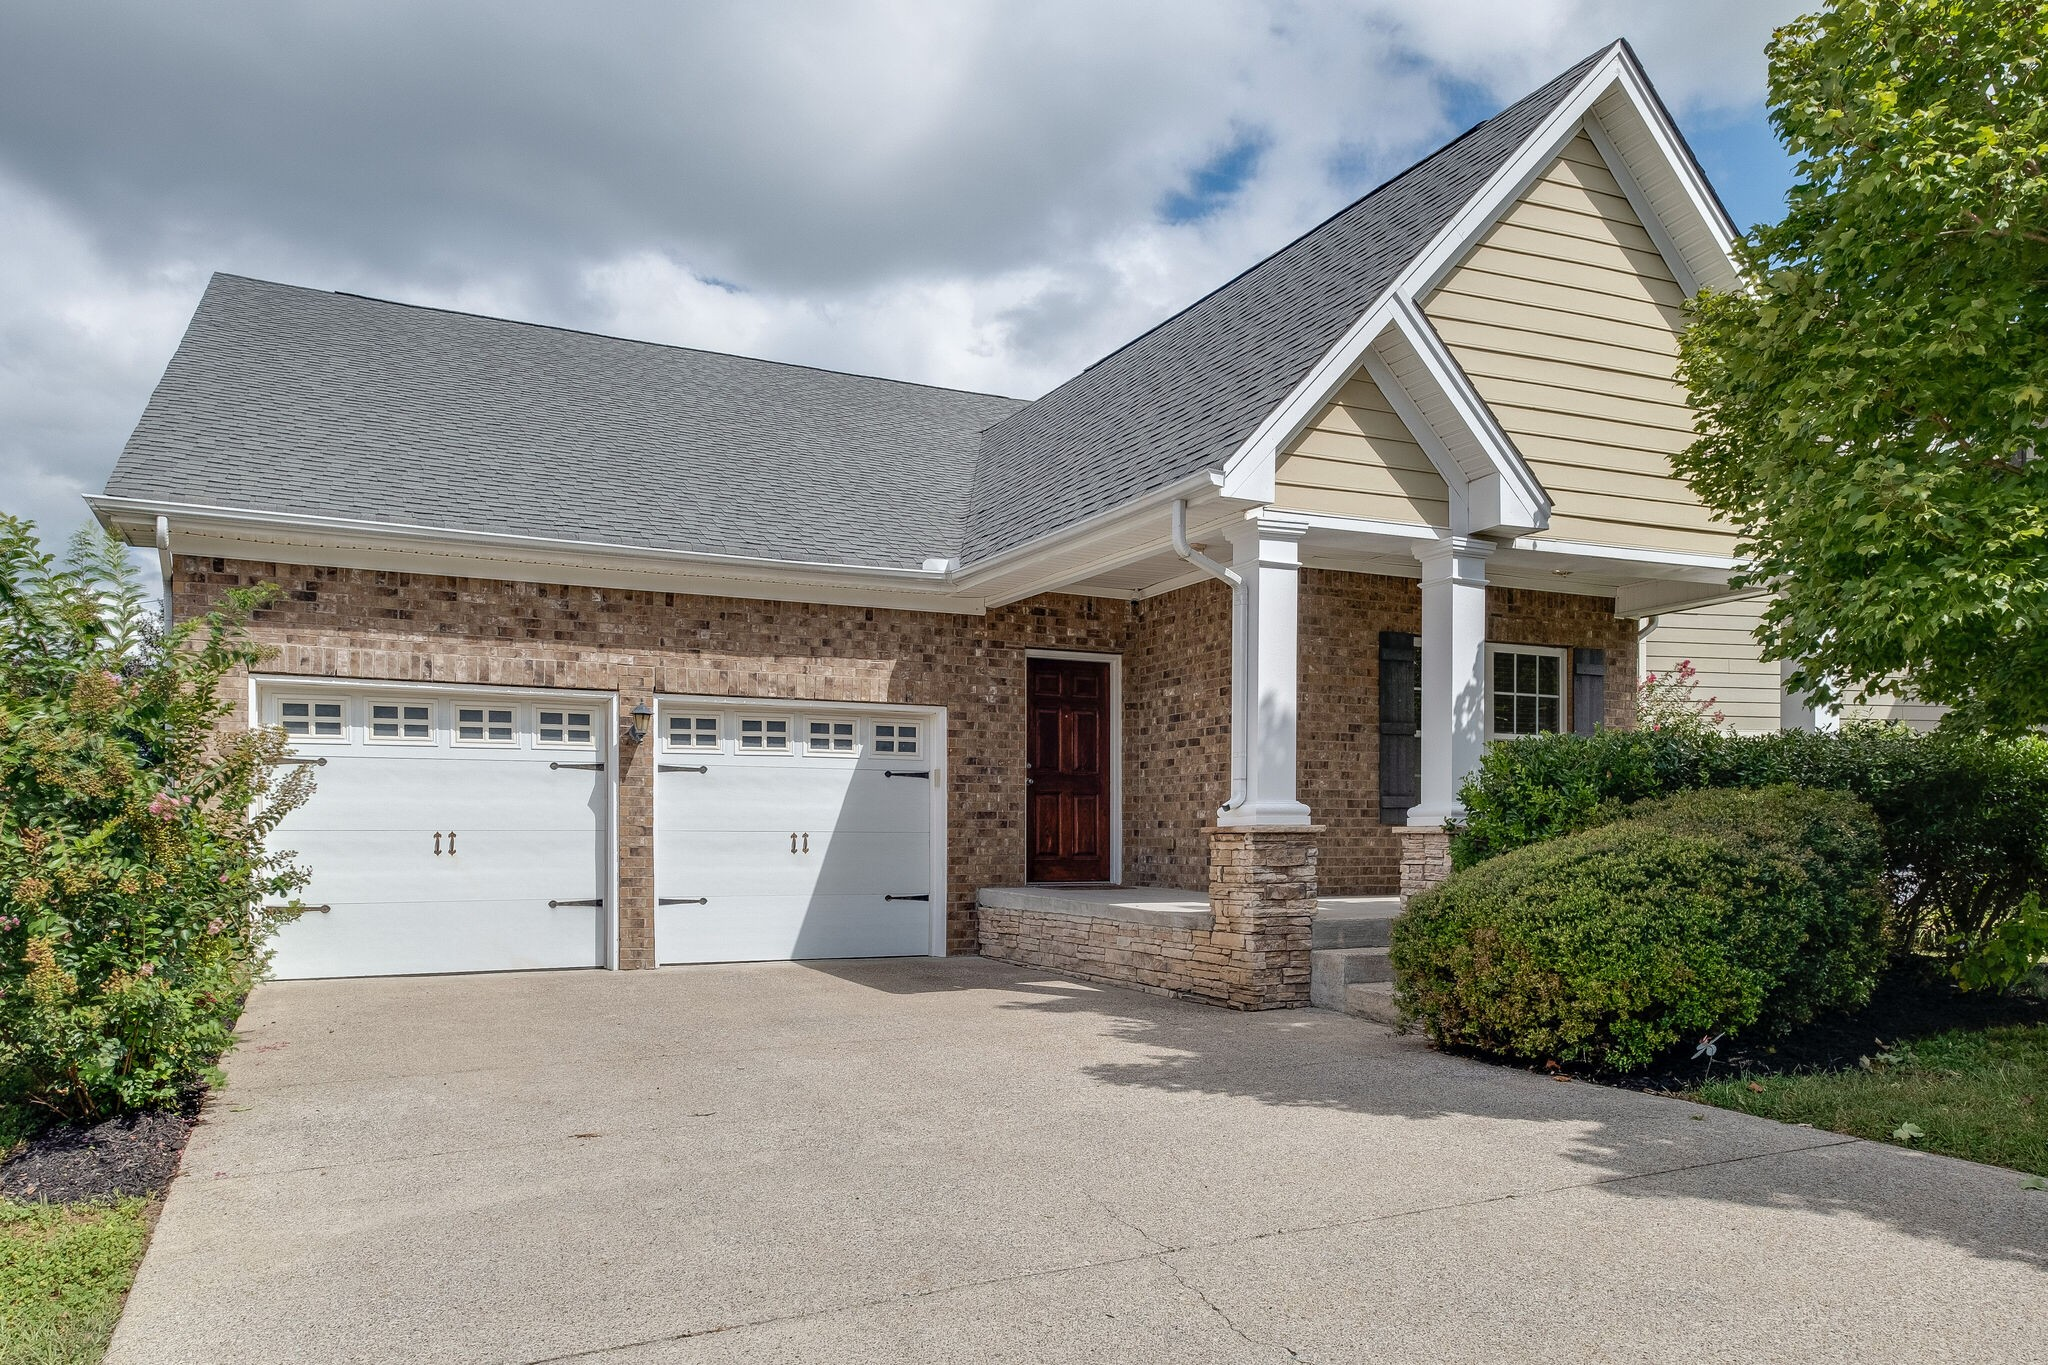 Bent Creek Rare Find! All brick,1-level, 4 bdrm home w/open plan & hardwoods in all rooms*Kitchen w/granite & tile backsplash*Primary bdrm w/large walk-in,bath w/granite,separate tub & tile shower w/frame-less door*3 secondary bdrms w/hrdwd & large closets*4th bdrm currently used as office*Oversized laundry w/custom storage cabinets + room for extra fridge or freezer*Large garage w/storage / workspace area*New HVAC*Large deck & great rear yard backing to huge common area*Only minutes to schools